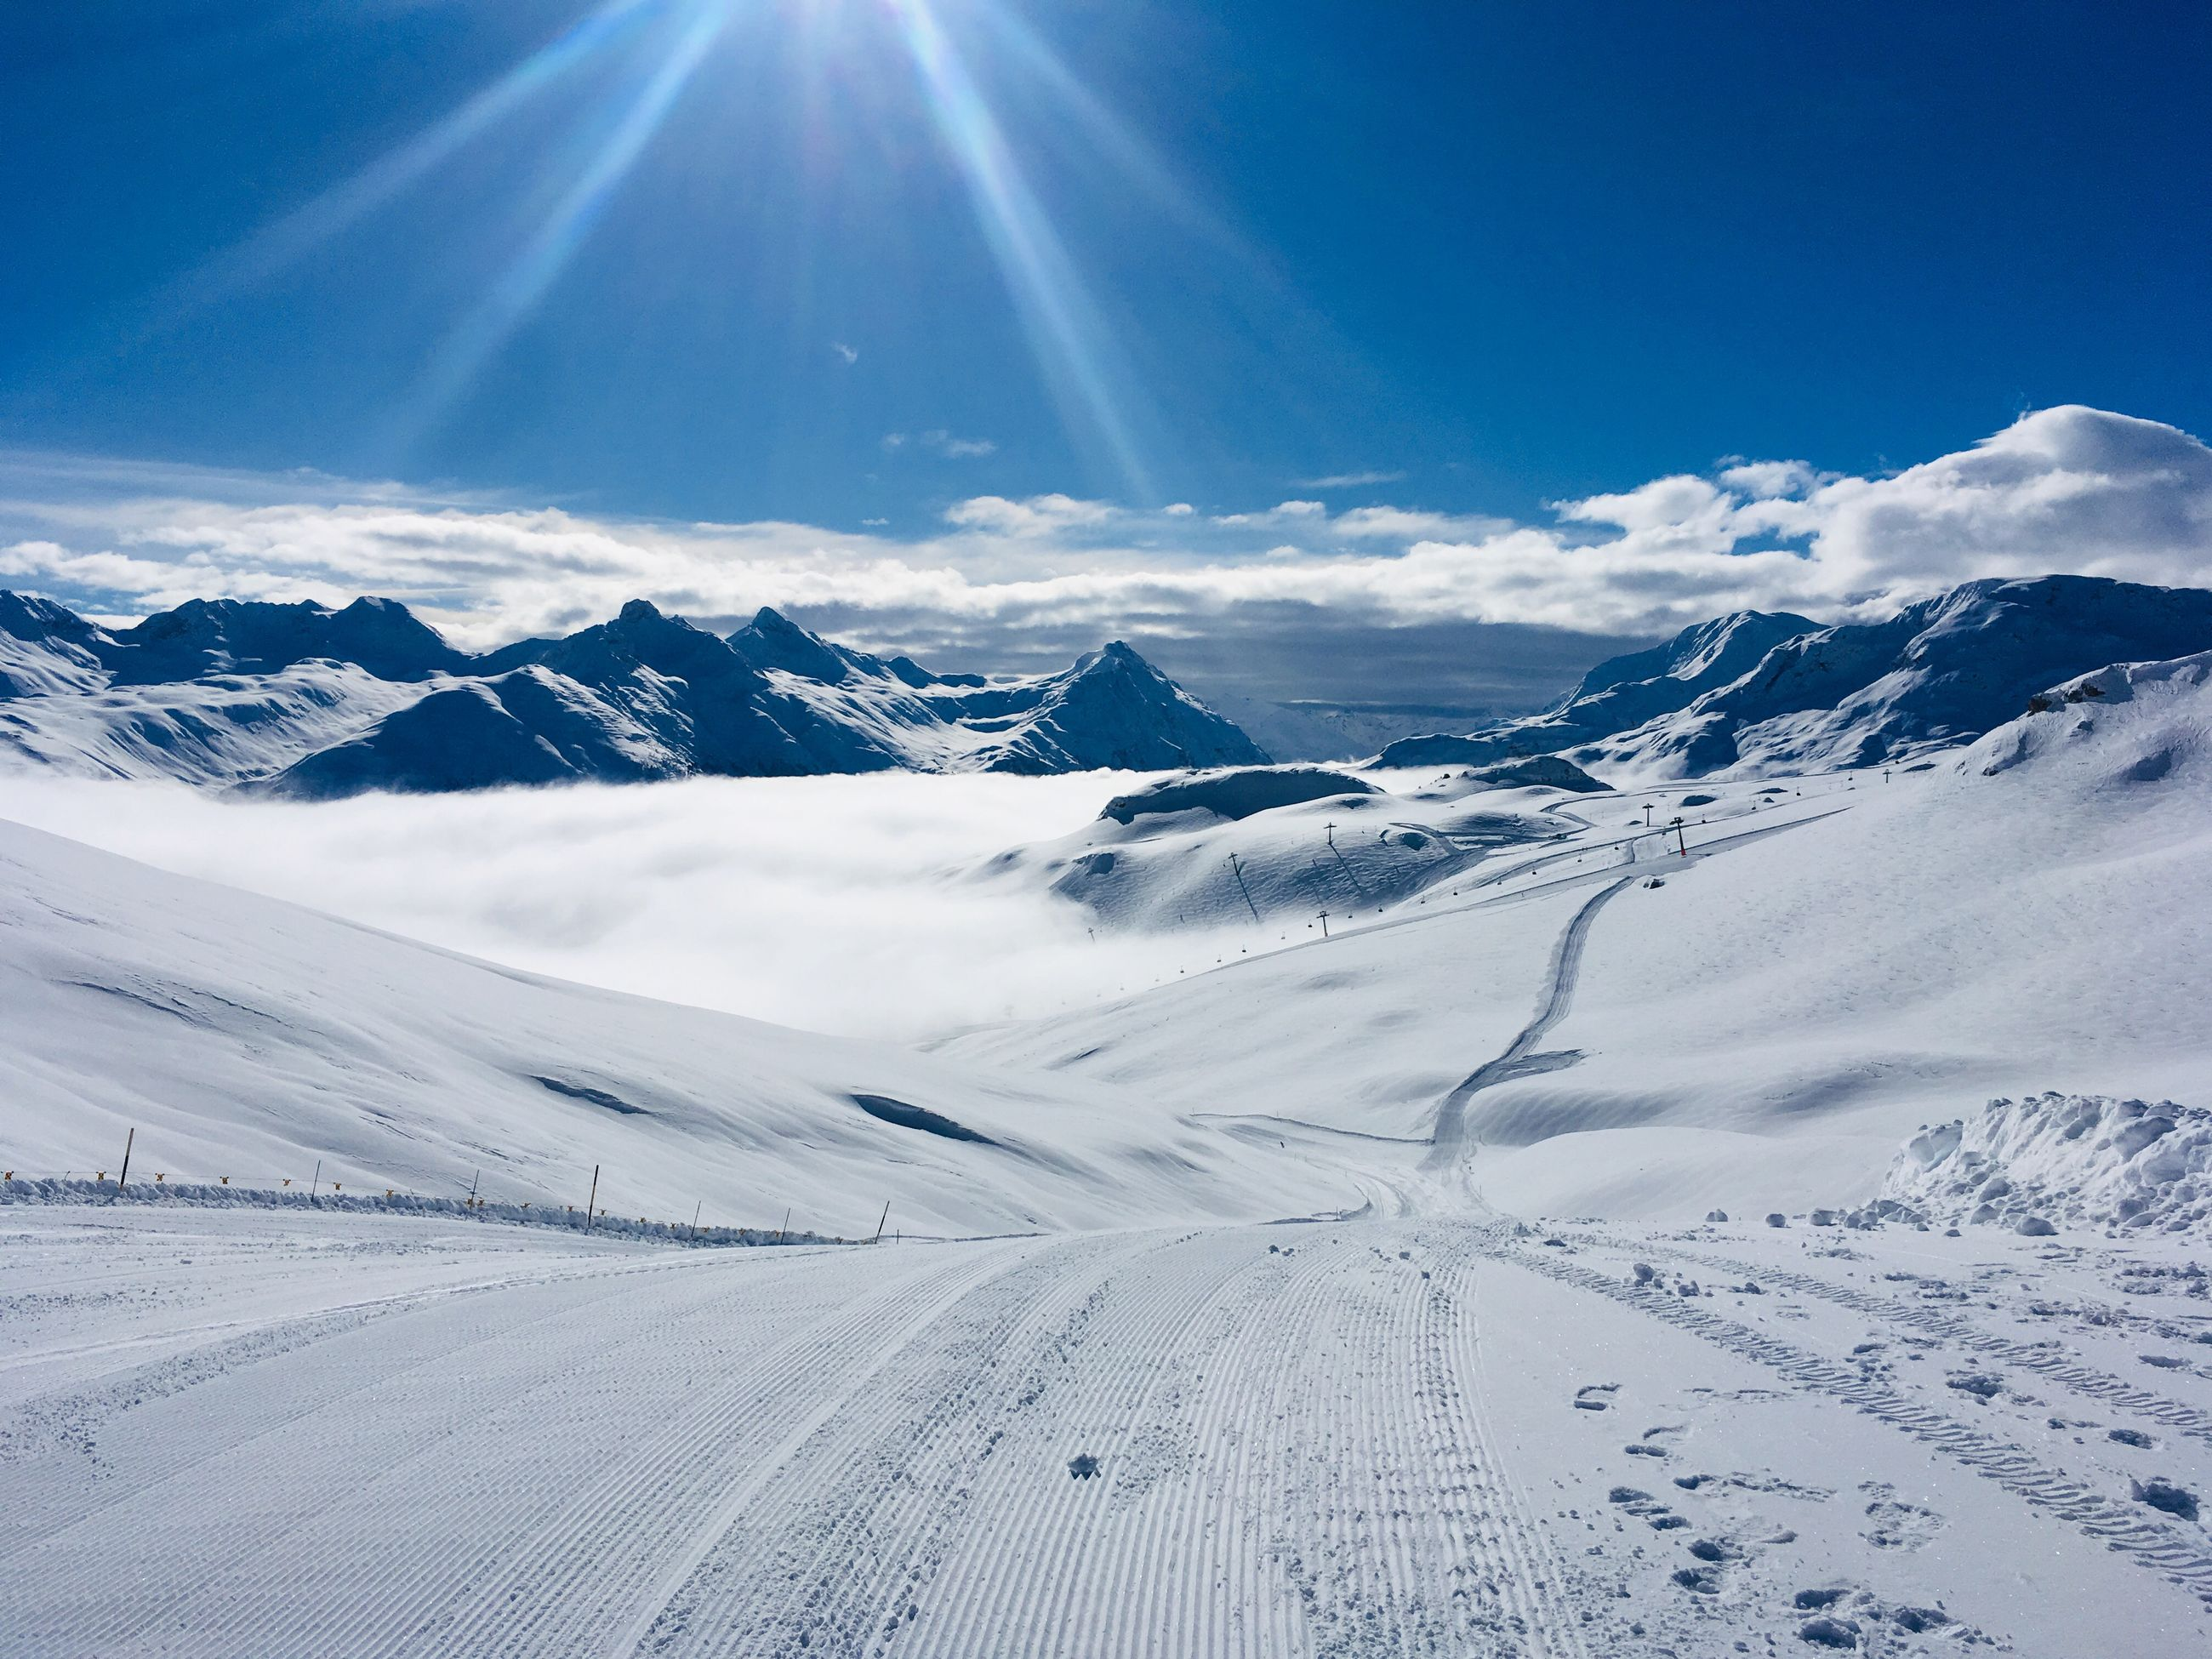 sky, snow, cold temperature, beauty in nature, winter, scenics - nature, tranquil scene, sunlight, tranquility, sunbeam, mountain, covering, environment, white color, day, landscape, ski track, cloud - sky, nature, mountain range, snowcapped mountain, lens flare, no people, sun, outdoors, bright, powder snow